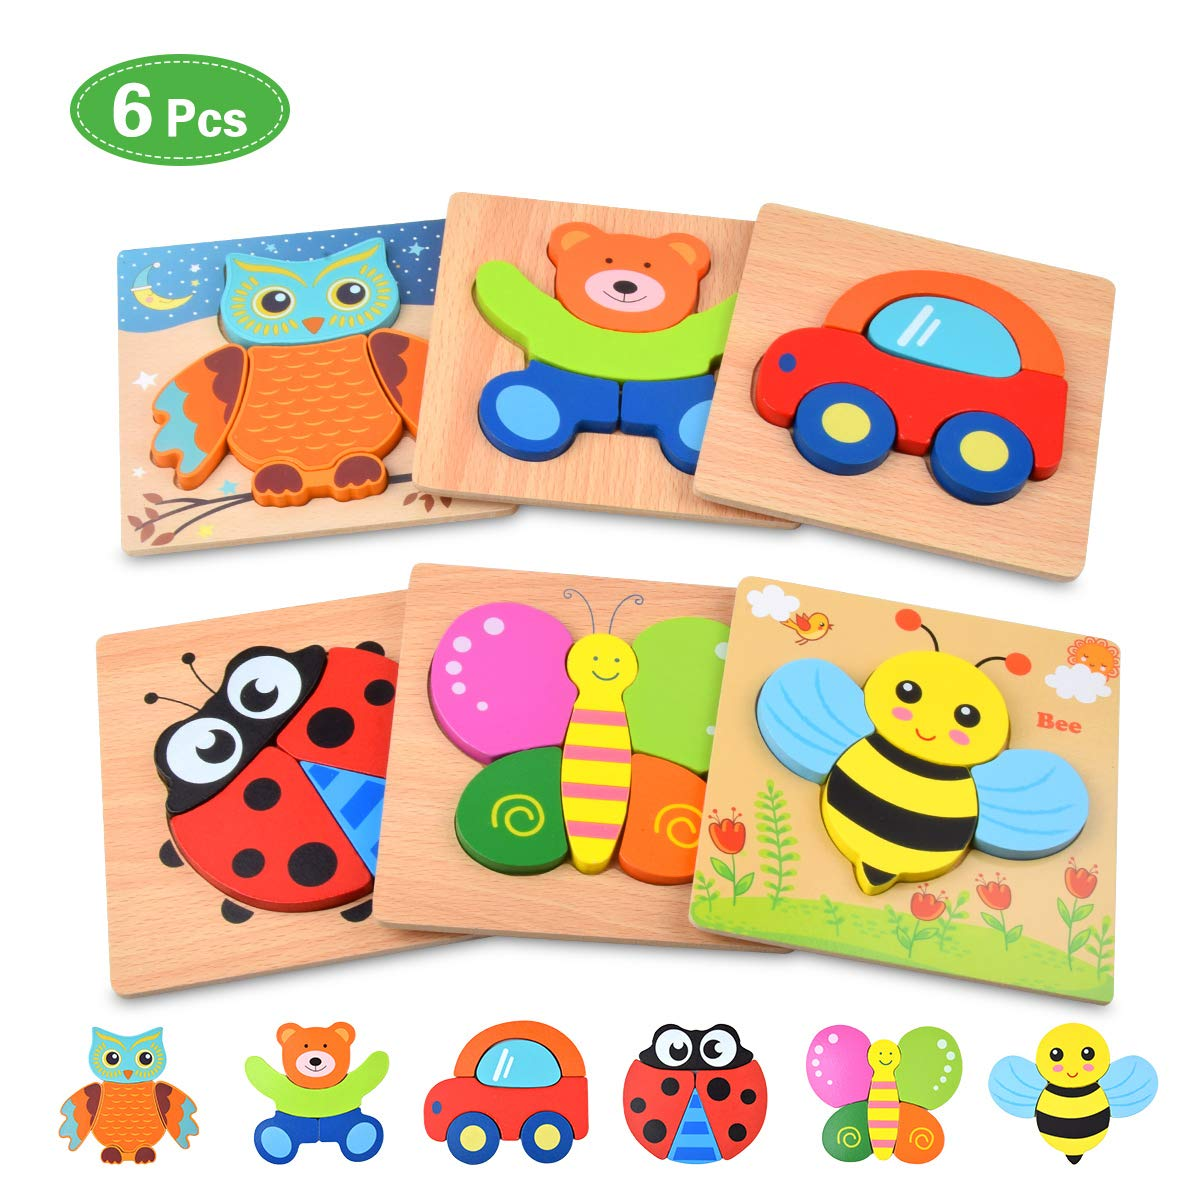 Wooden Jigsaw Puzzles for Toddlers Baby Kids 1 2 3 Years Old Color Shapes Wooden Puzzles Boys & Girls Educational Learning Toys Gift 3D Animals Vehicle Puzzles (6 Pack)